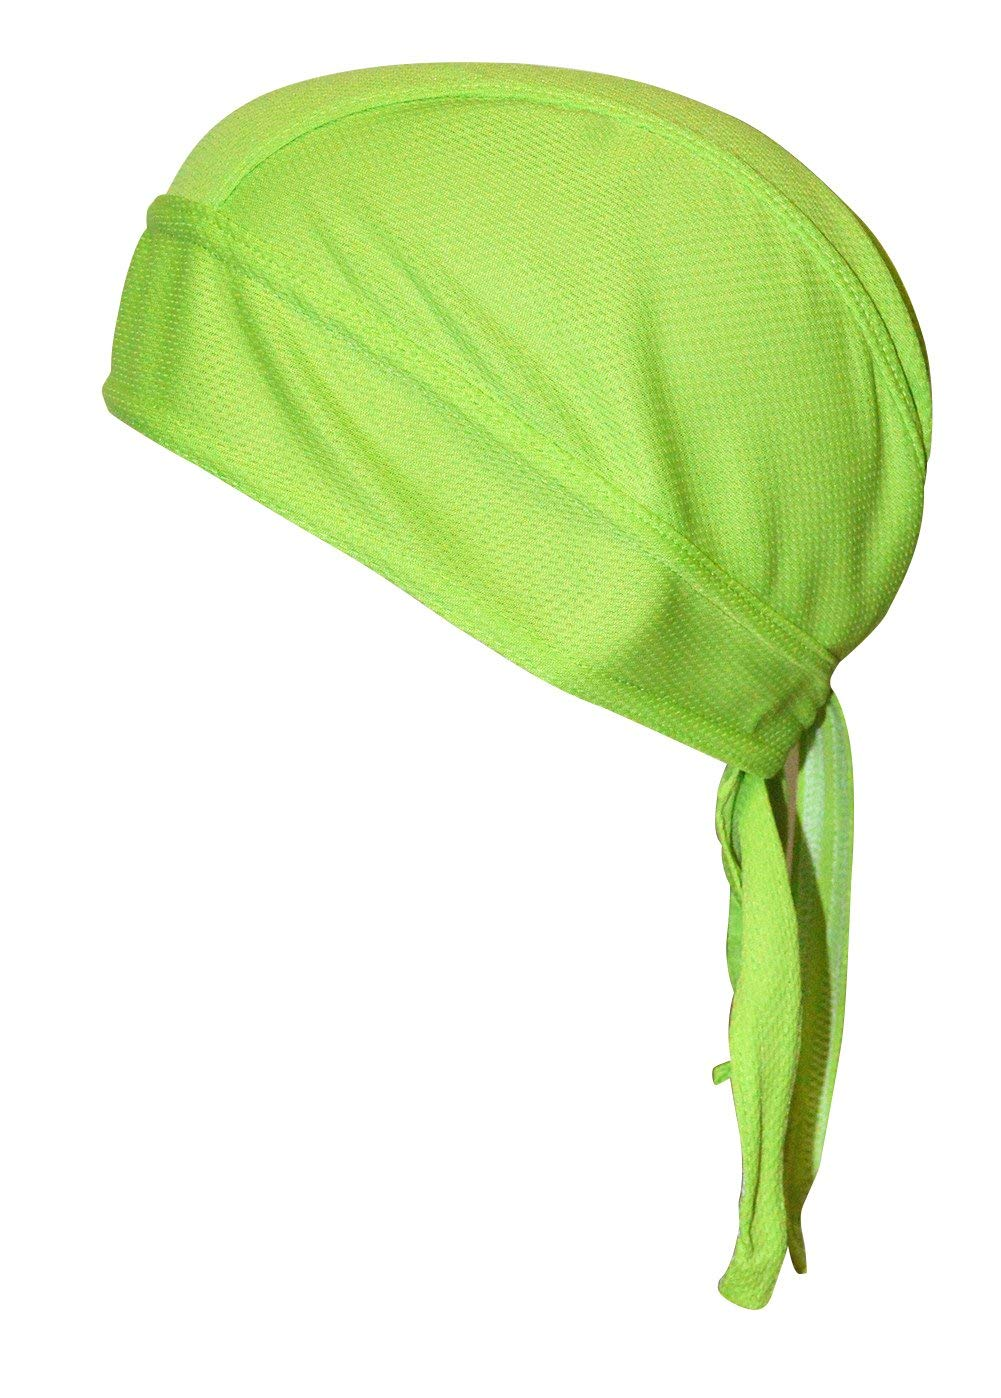 QING Sweat Wicking Beanie Cap Hat Chemo Cap Skull Cap for Men and Women (Fluorescent Green 1 Pack) by QING